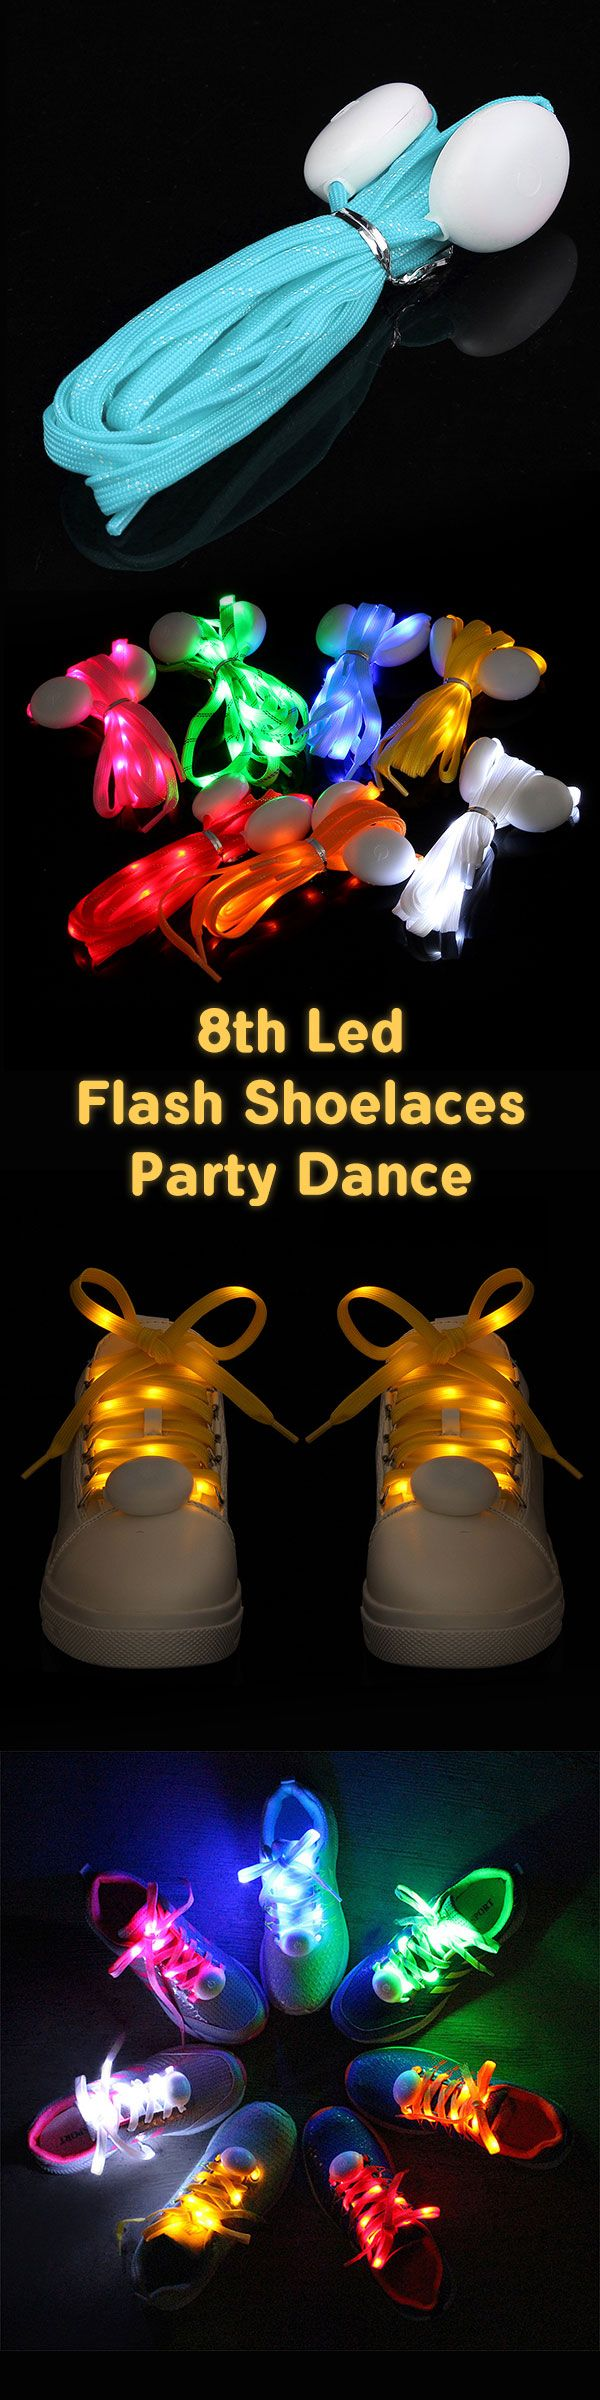 US$5.88 -- 8th Generation Flash Shoelaces LED Glowing Shoelaces Shoe Strap Outdoor Dance Party Supplies#newchic#festival#party